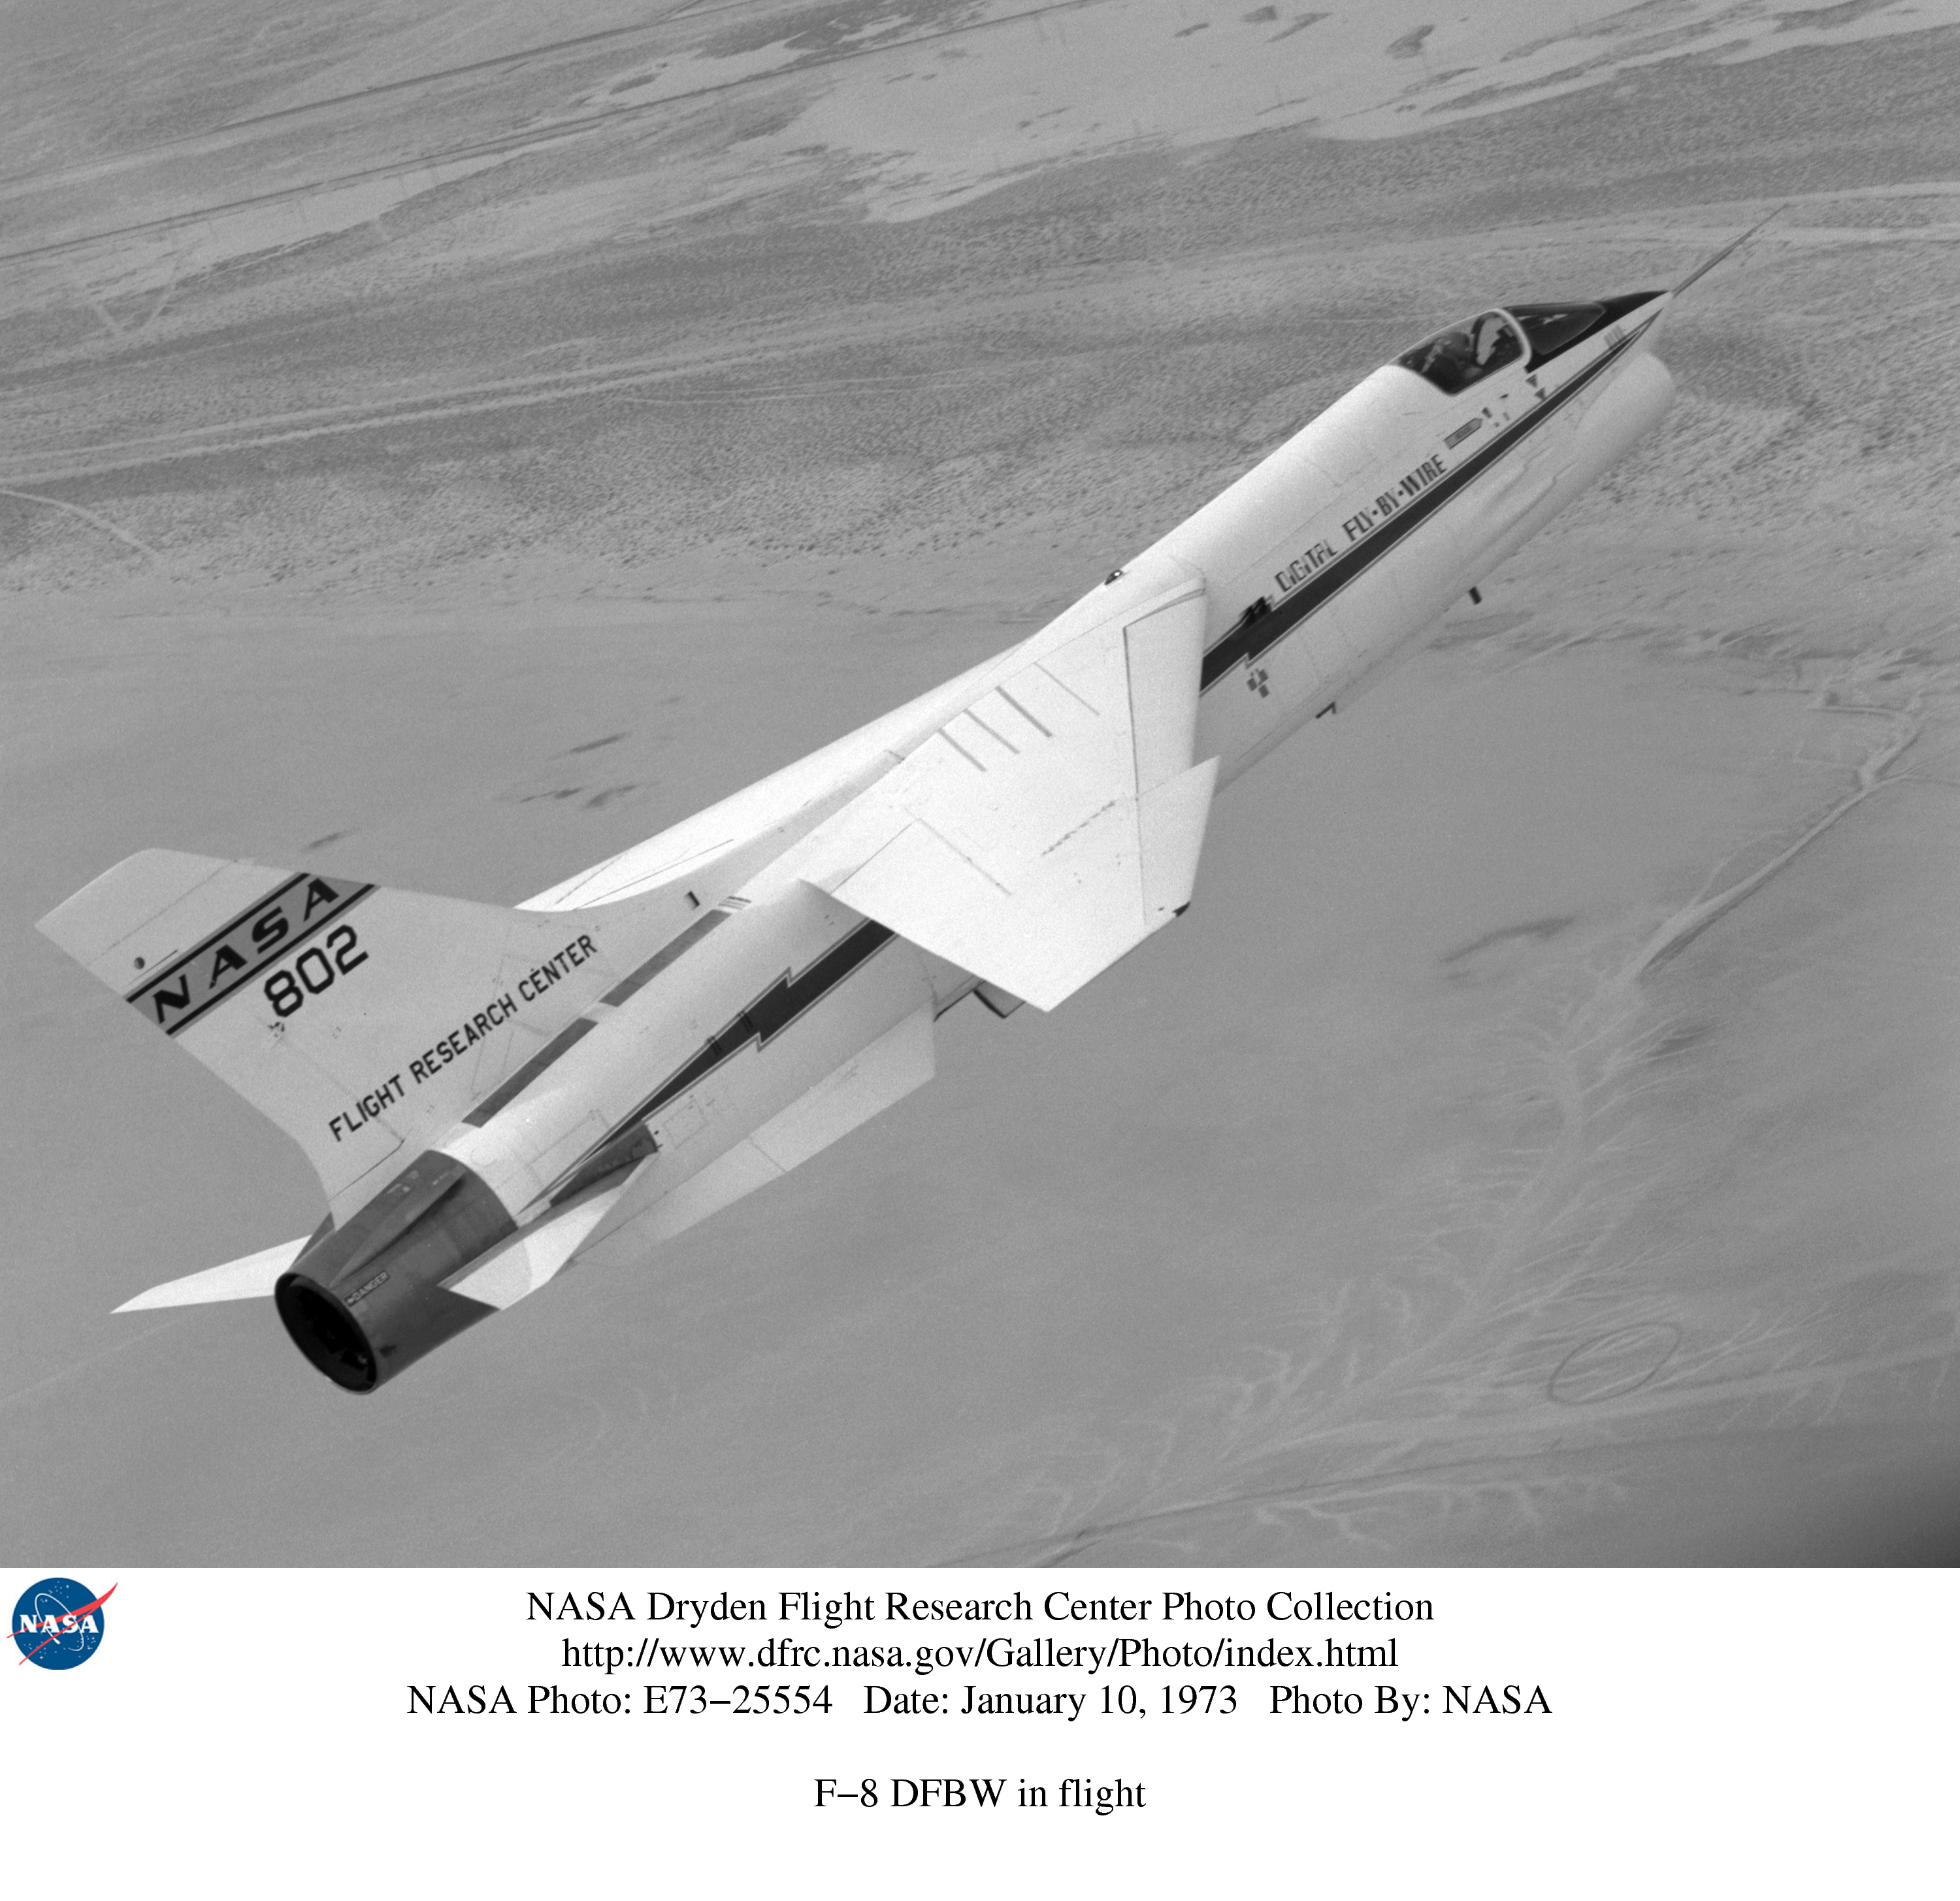 Vought f8u-2 crusader (buno 145546), (redesignated f-8c in 1962) to nasa as #802 dfbw (digital-fly-by-wire) photo